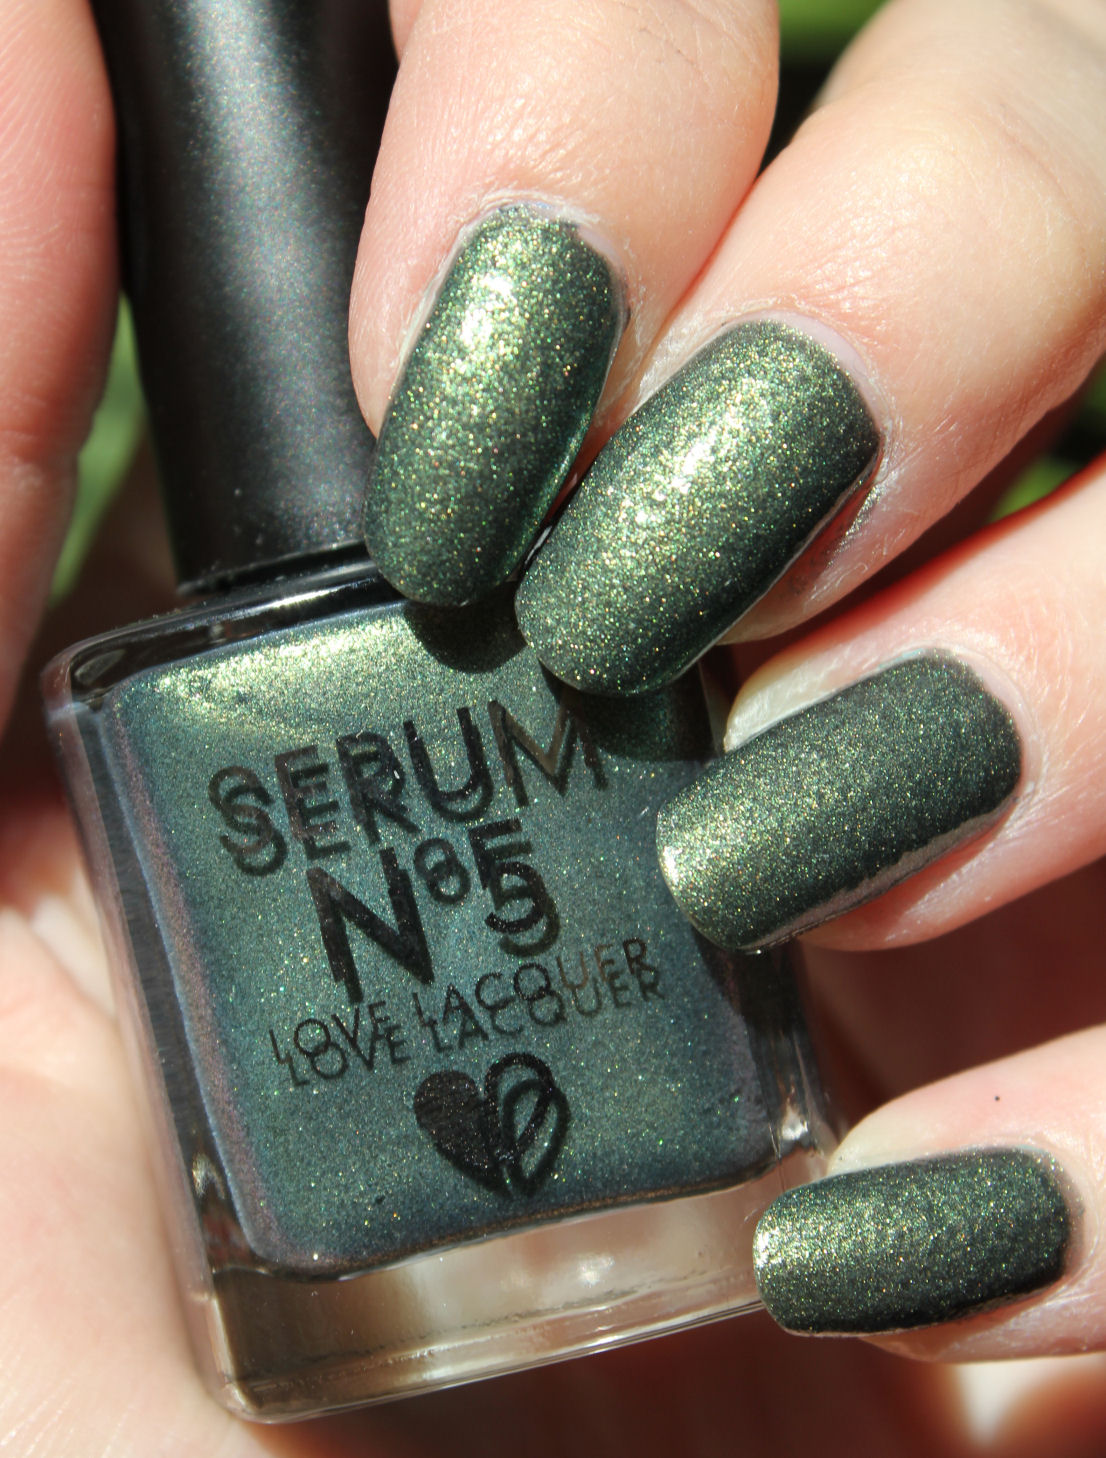 http://lacquediction.blogspot.de/2014/07/serum-no-5-twilight-sparks.html